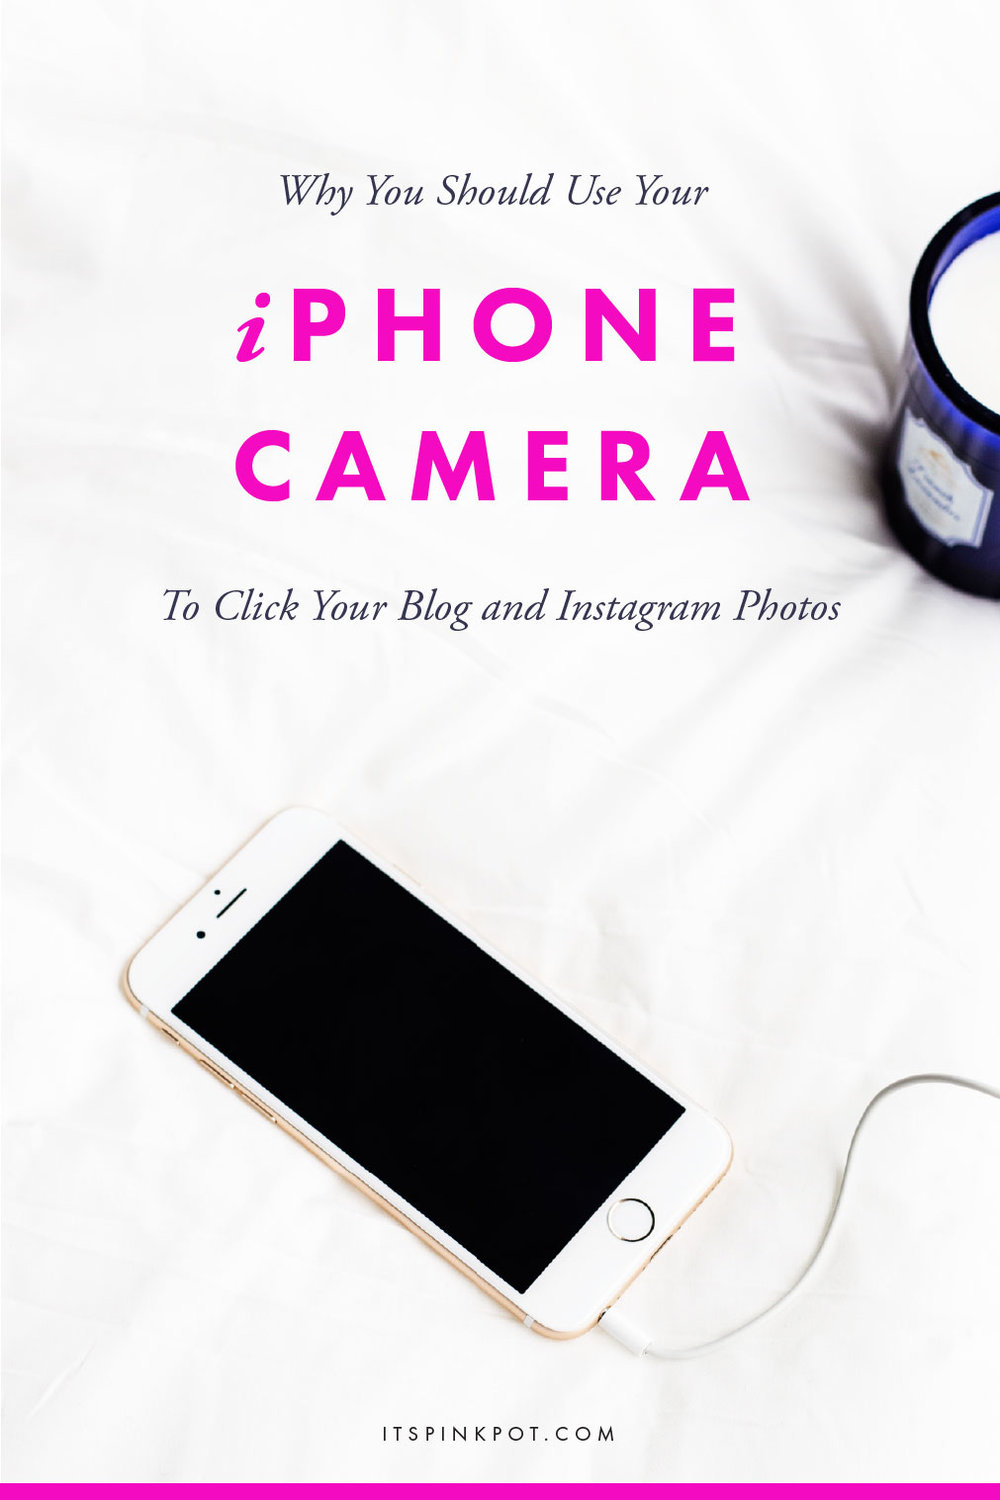 Did you know that the iPhone camera is the most popular camera in the world. Here are 8 reasons to start using your iPhone to capture high quality photos for your blog and business.